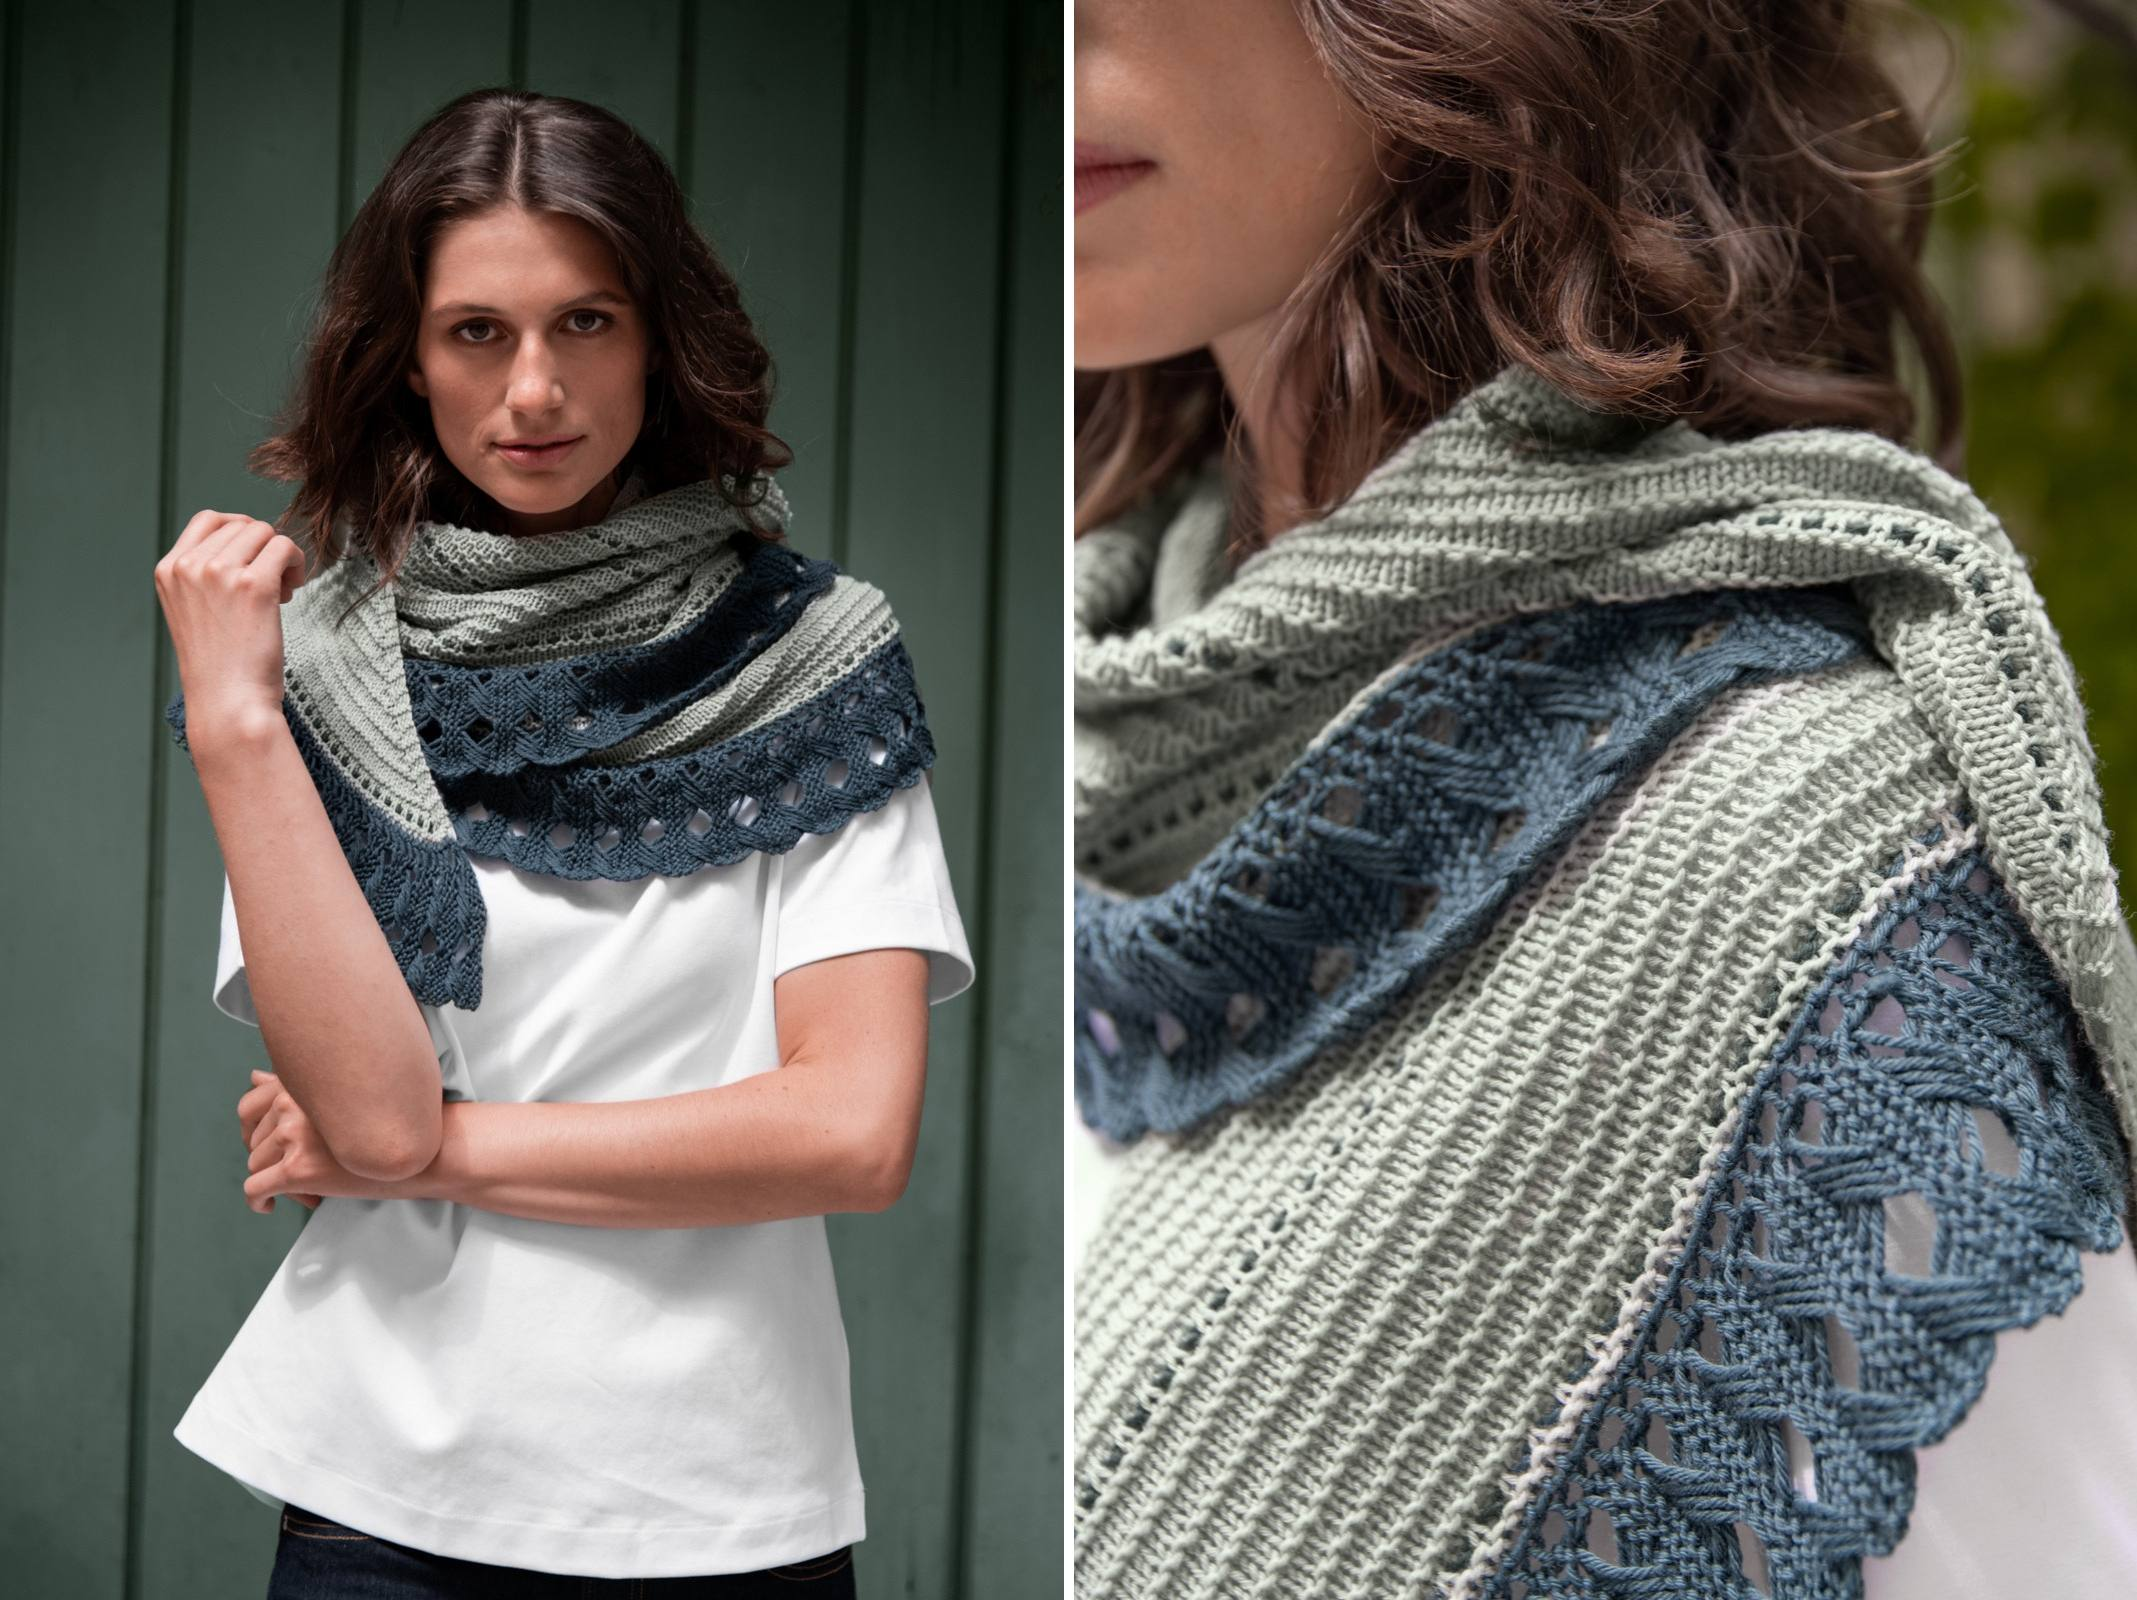 Rosemary Shawl by Matilda Kruse